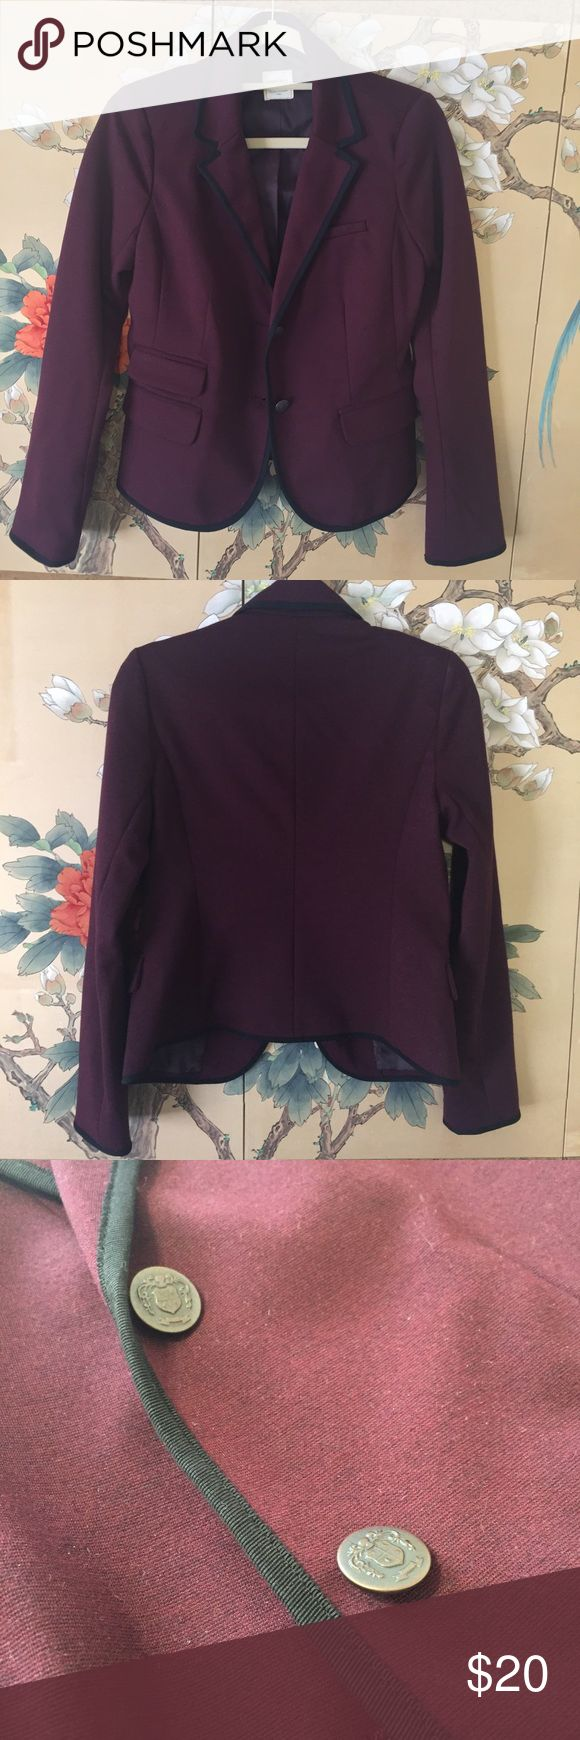 Fitted Gap blazer with black pipping. This fitted blazer from Gap is a rich purple and has black pipping around the edge of the collar and cuffs. Perfect way to incorporate color in your work wardrobe or to wear with jeans and a scarf. Gap Jackets & Coats Blazers